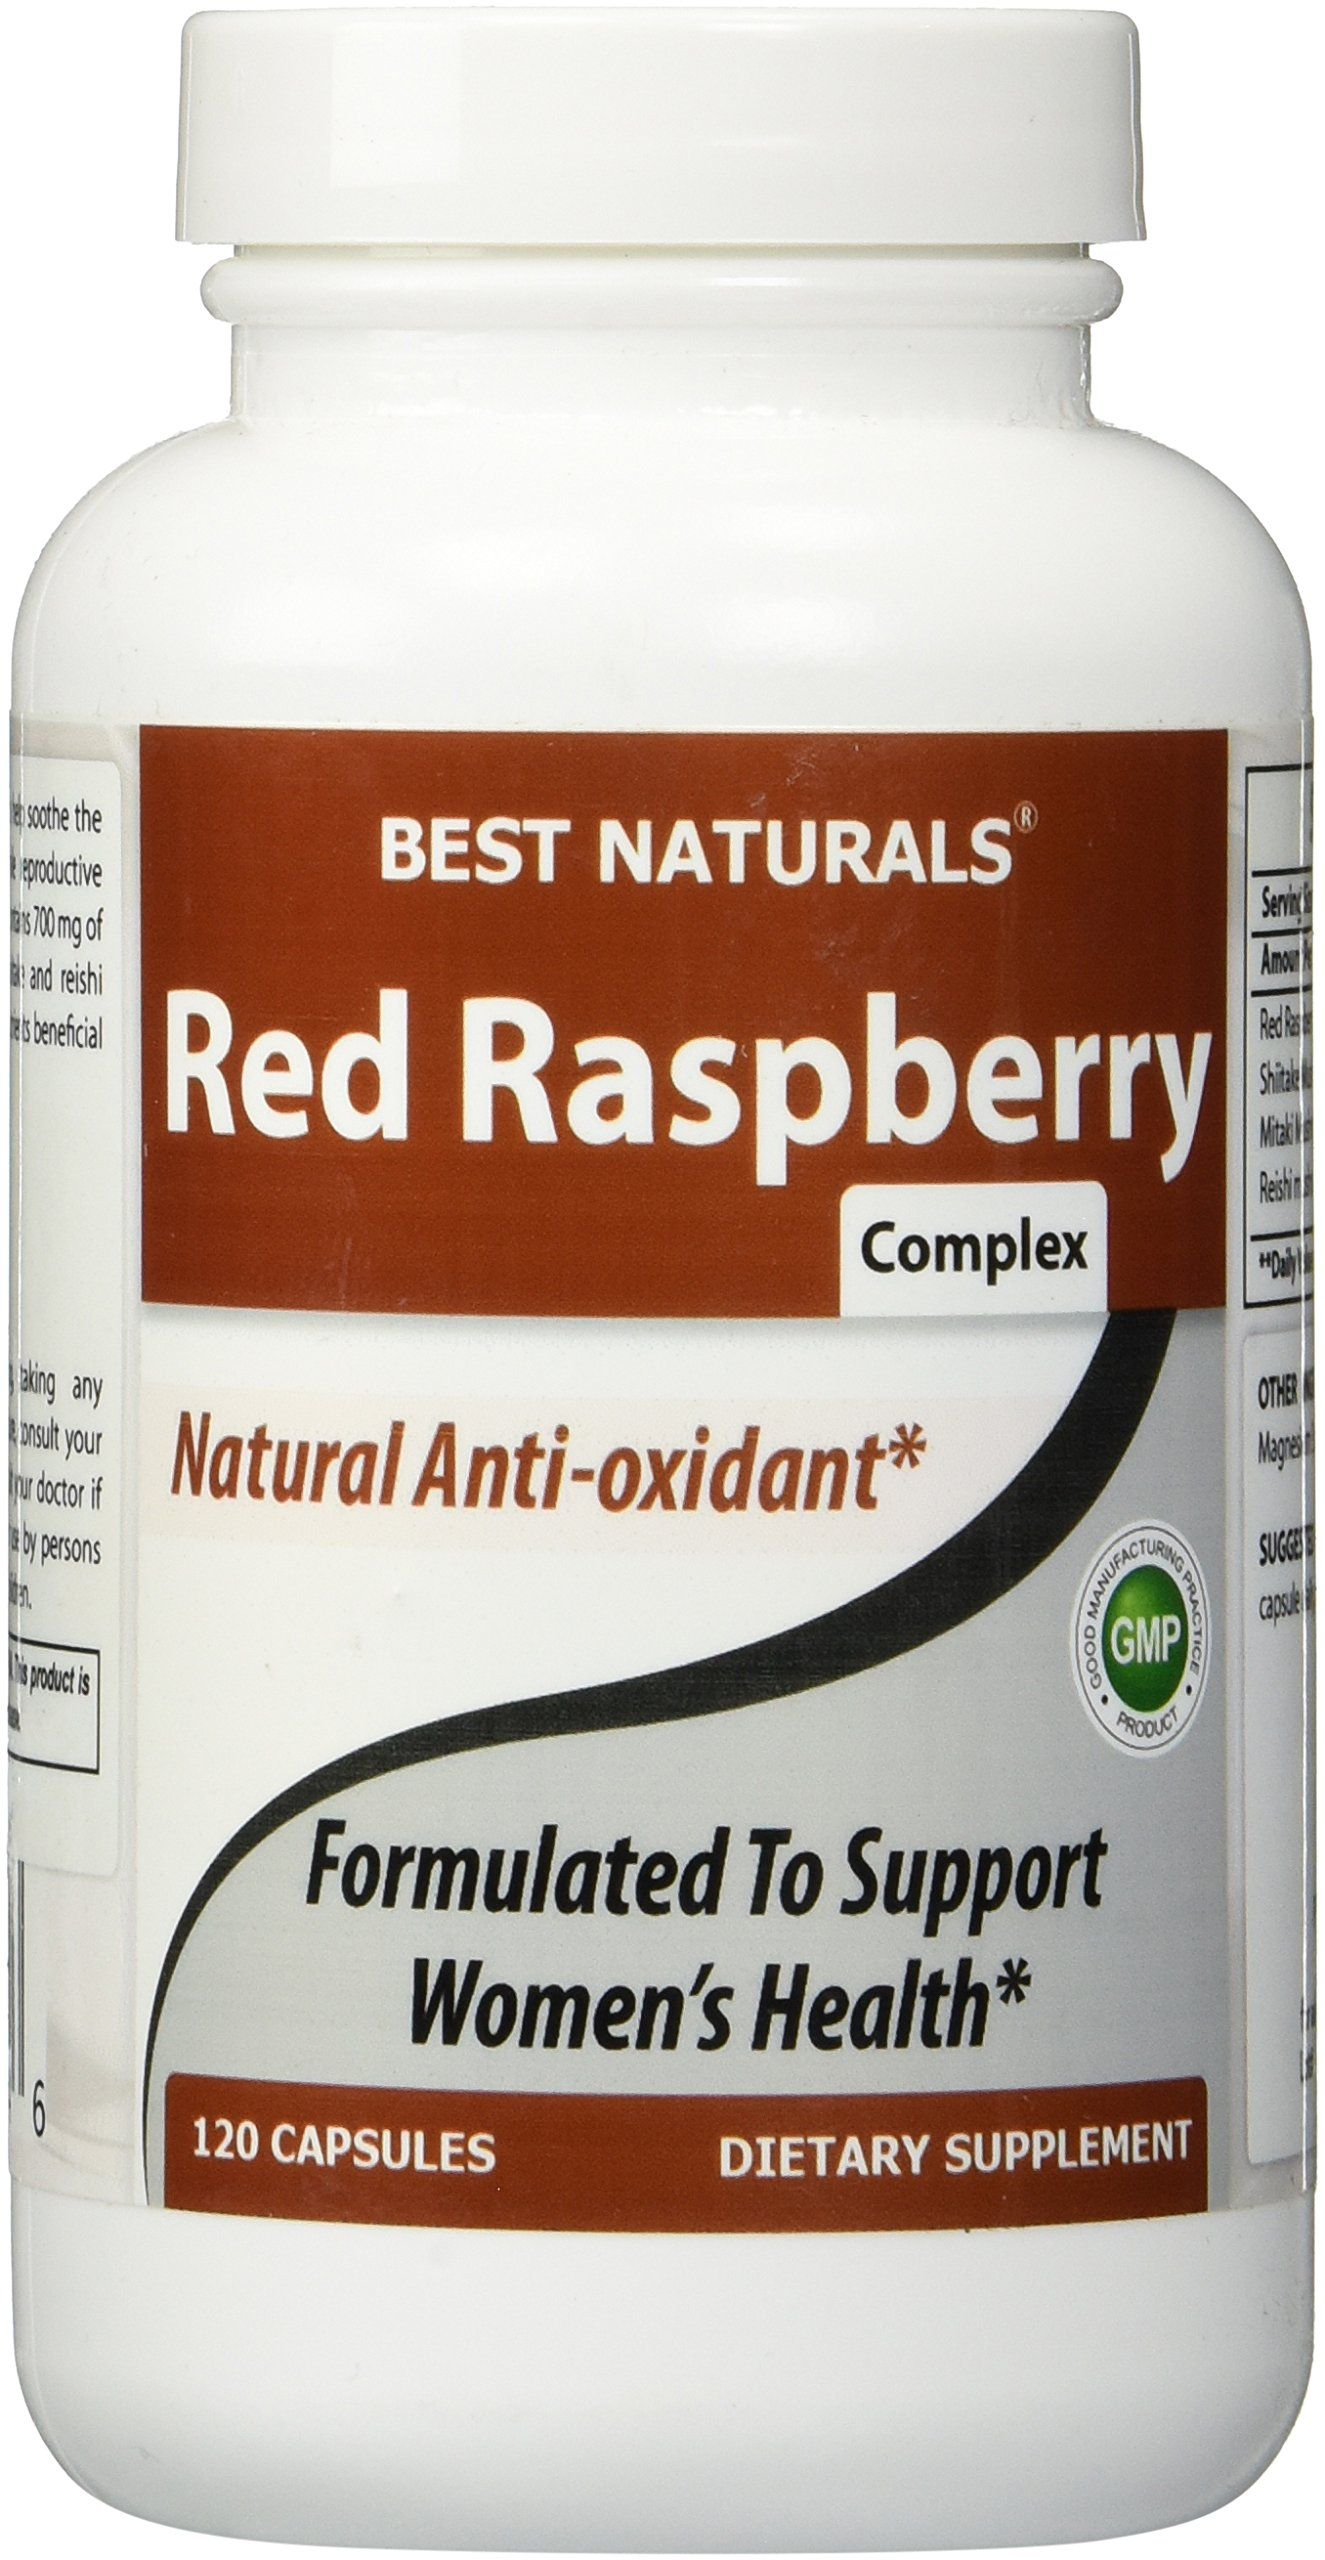 Best naturals red raspberry complex 800 mg 120 capsules